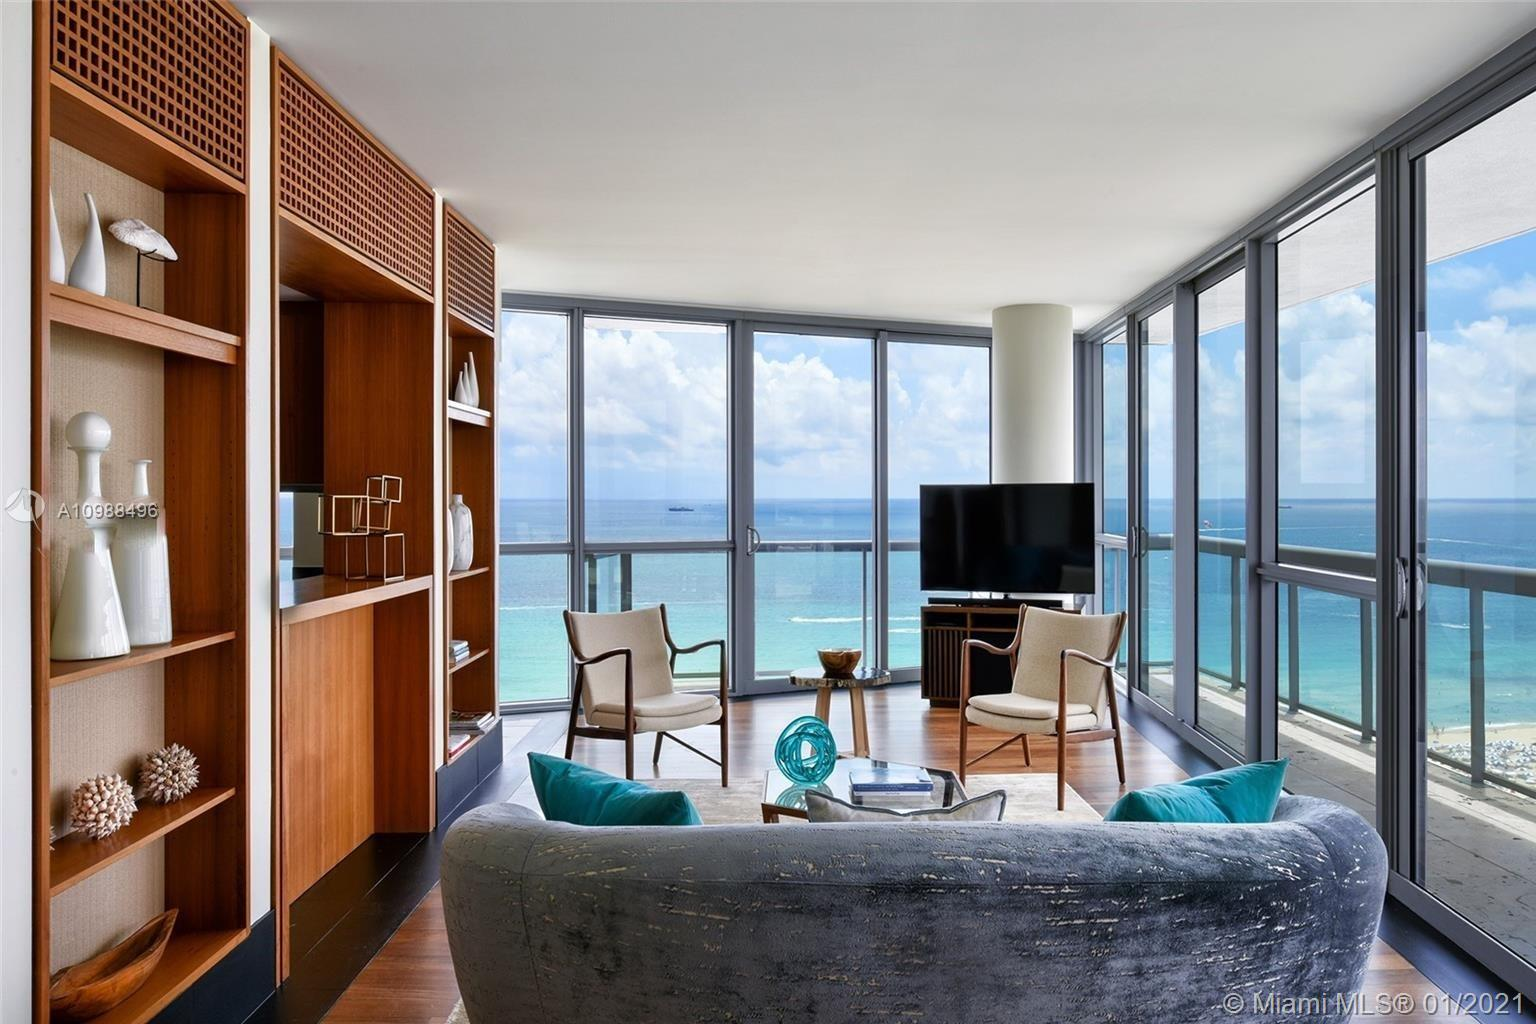 101 20th St, Unit #2308 Luxury Real Estate